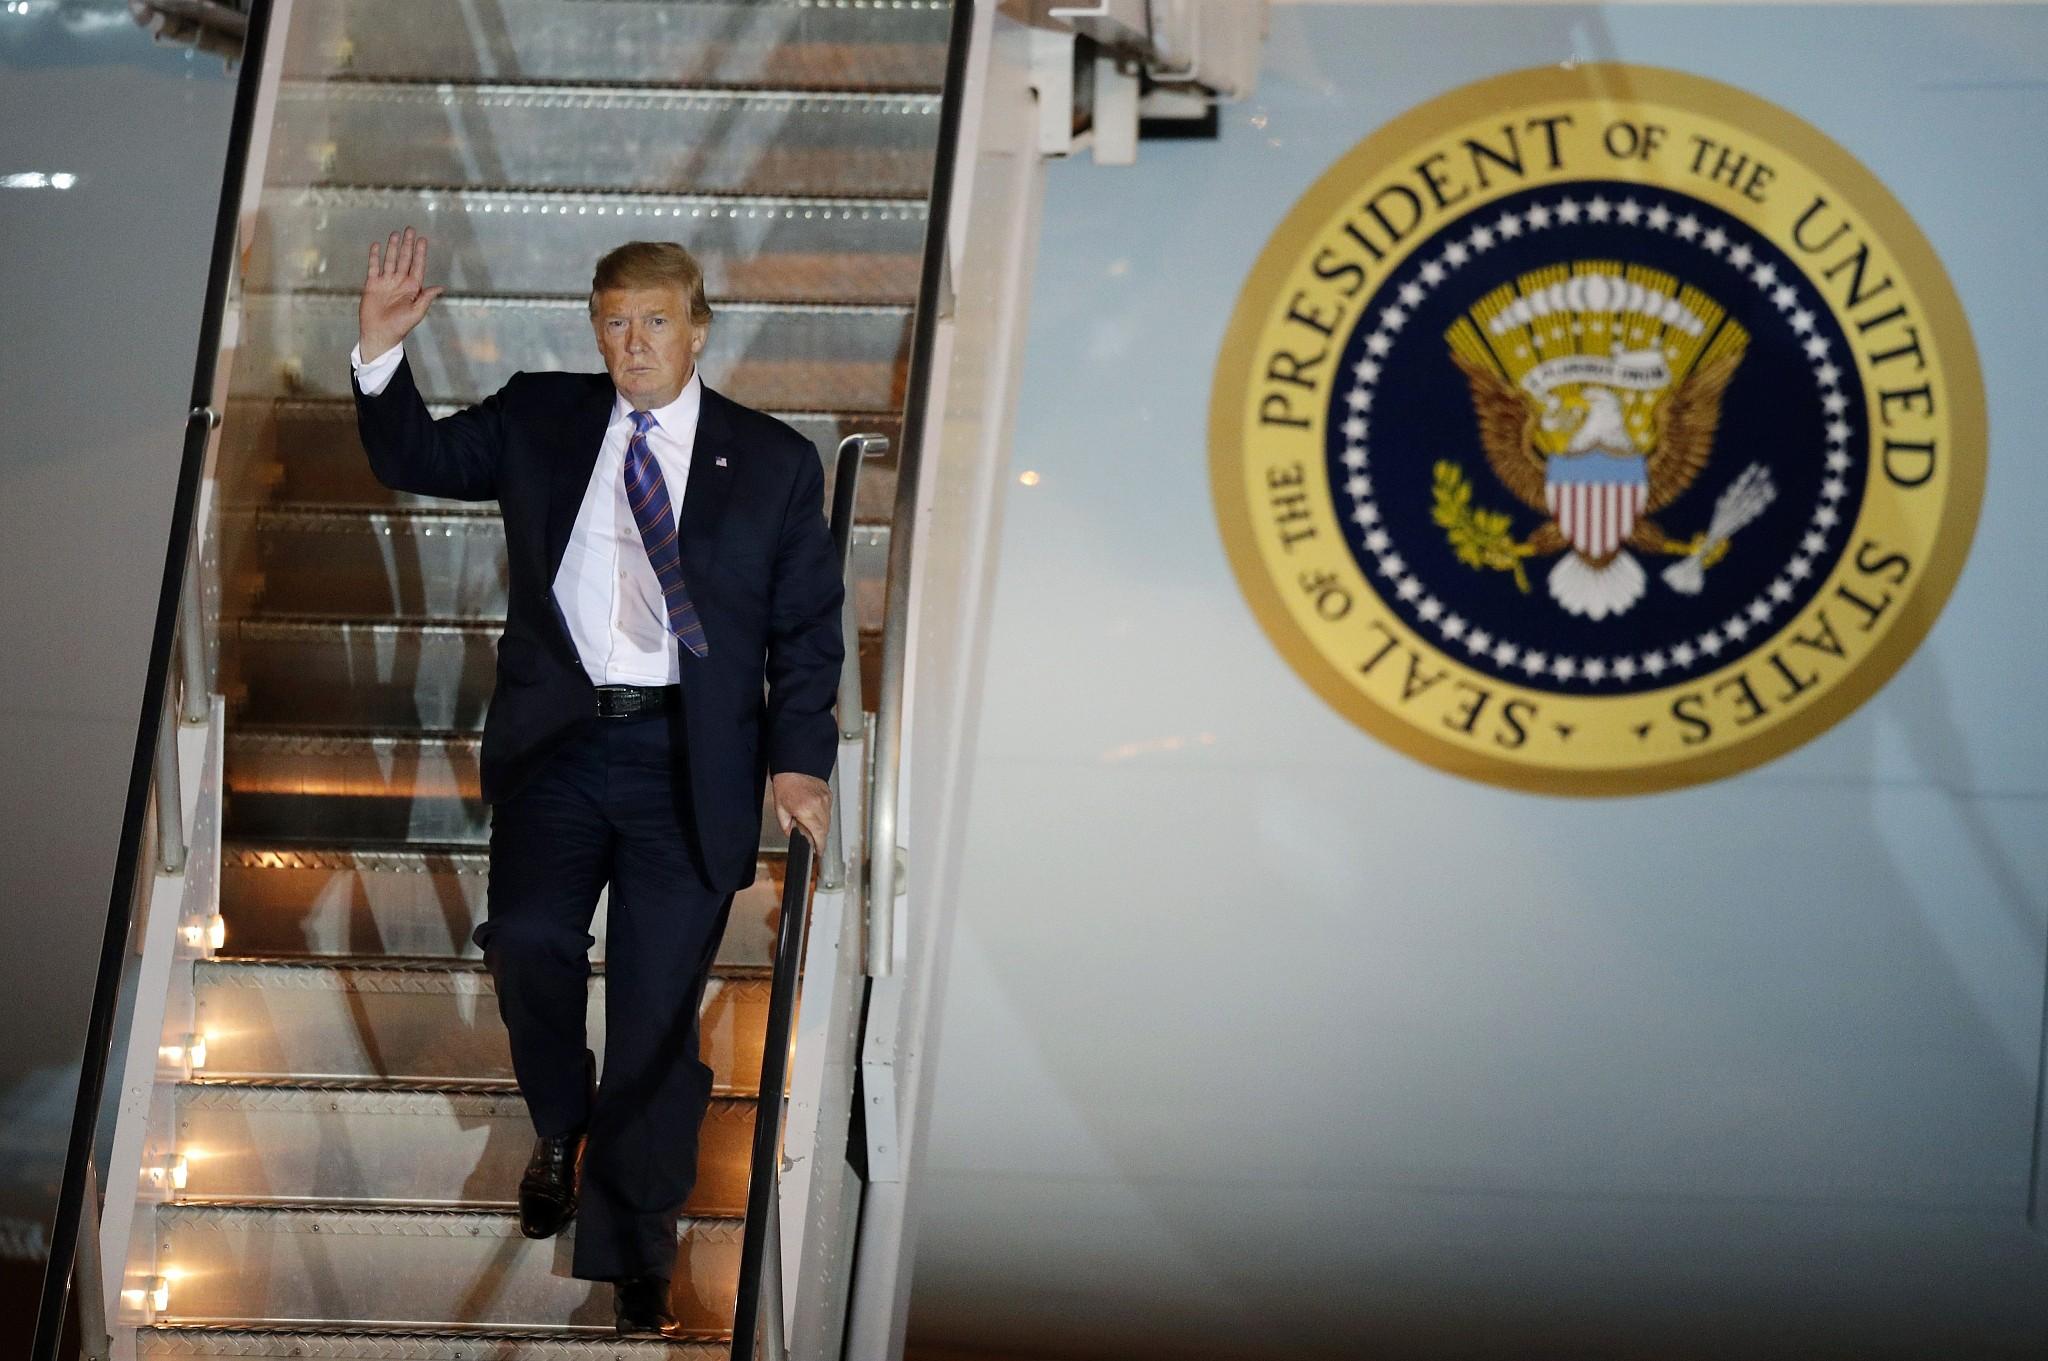 US President Donald Trump disembarks from Air Force One after arriving at Mc Carran International Airport